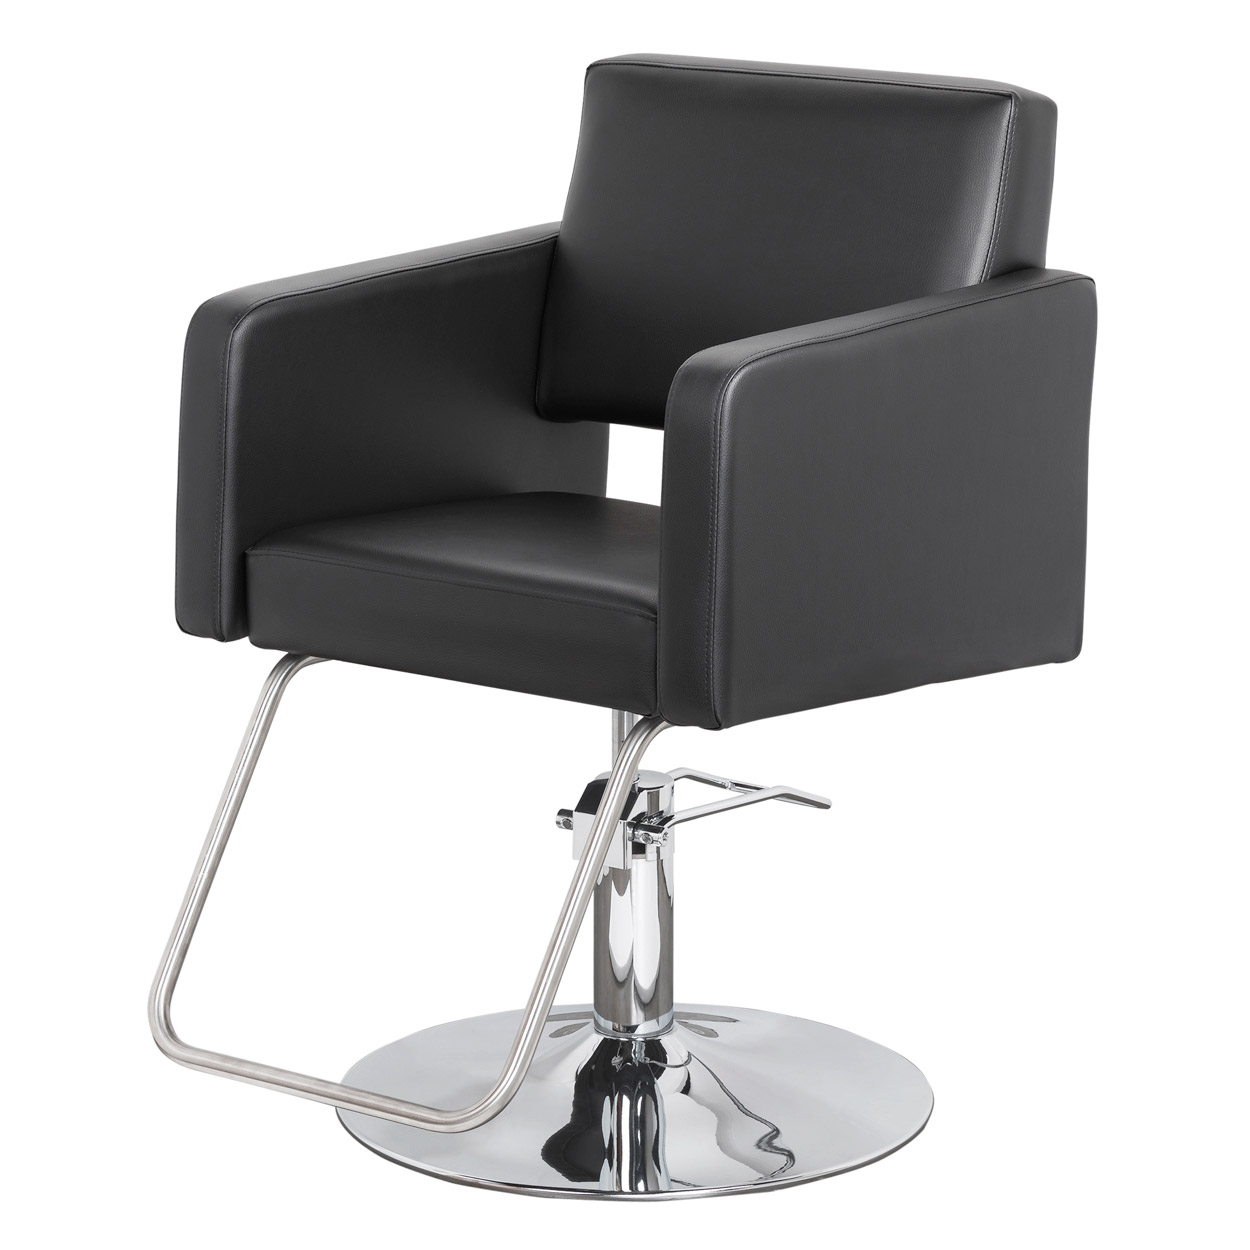 Modin Hair Salon Styling Chair image size reference